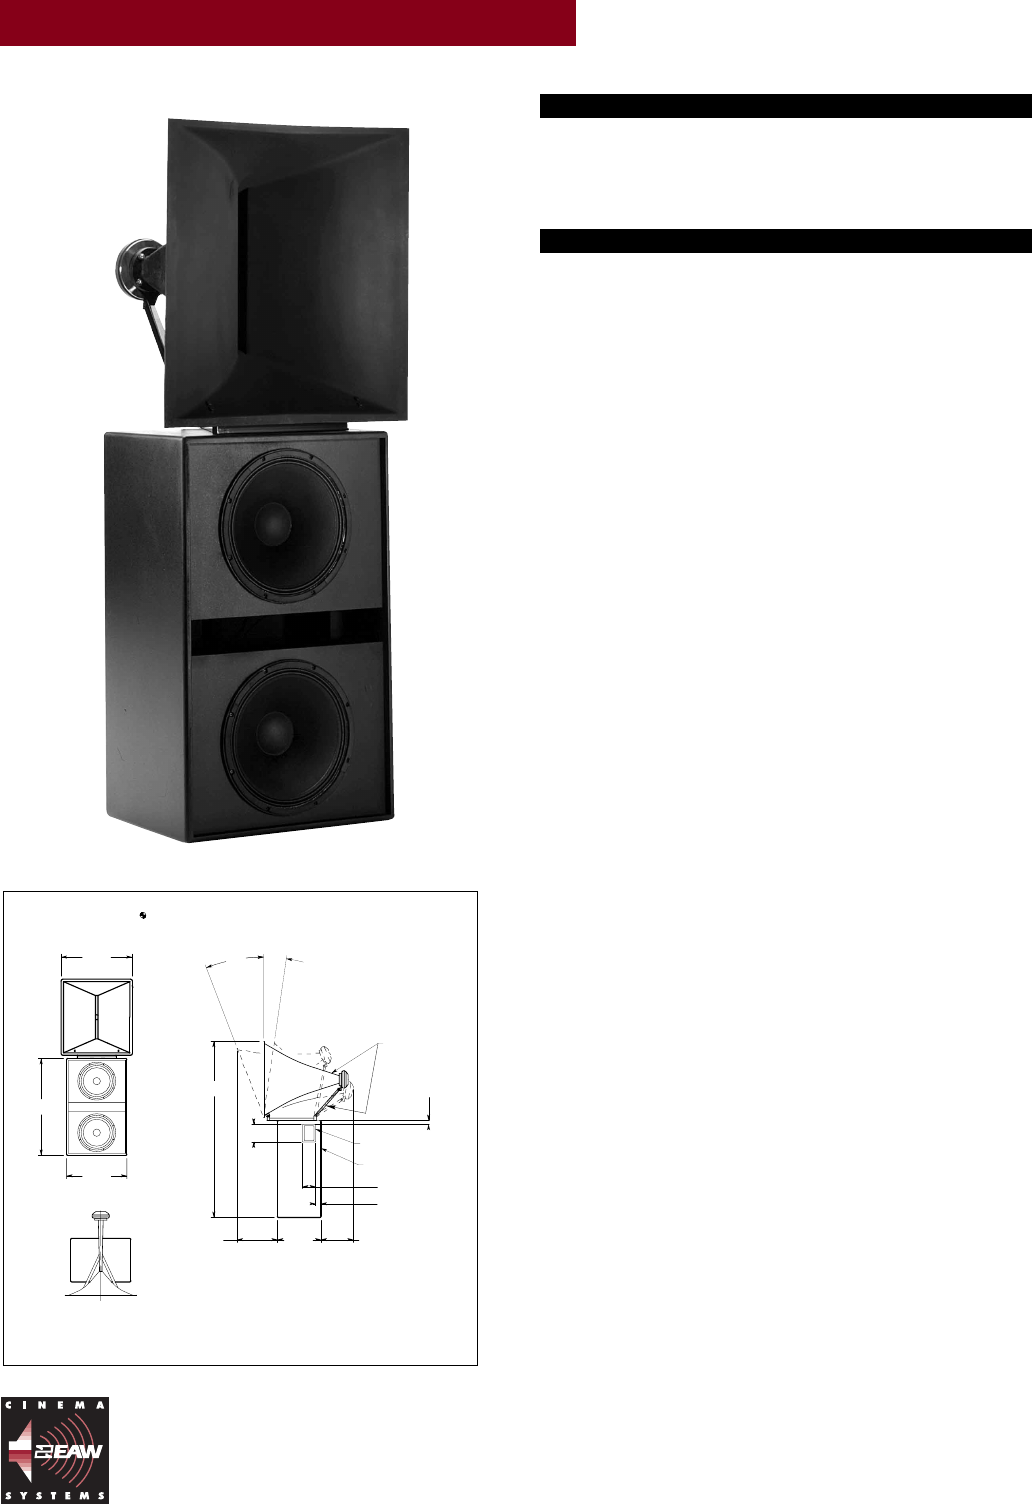 kaidaer speaker user manual pdf